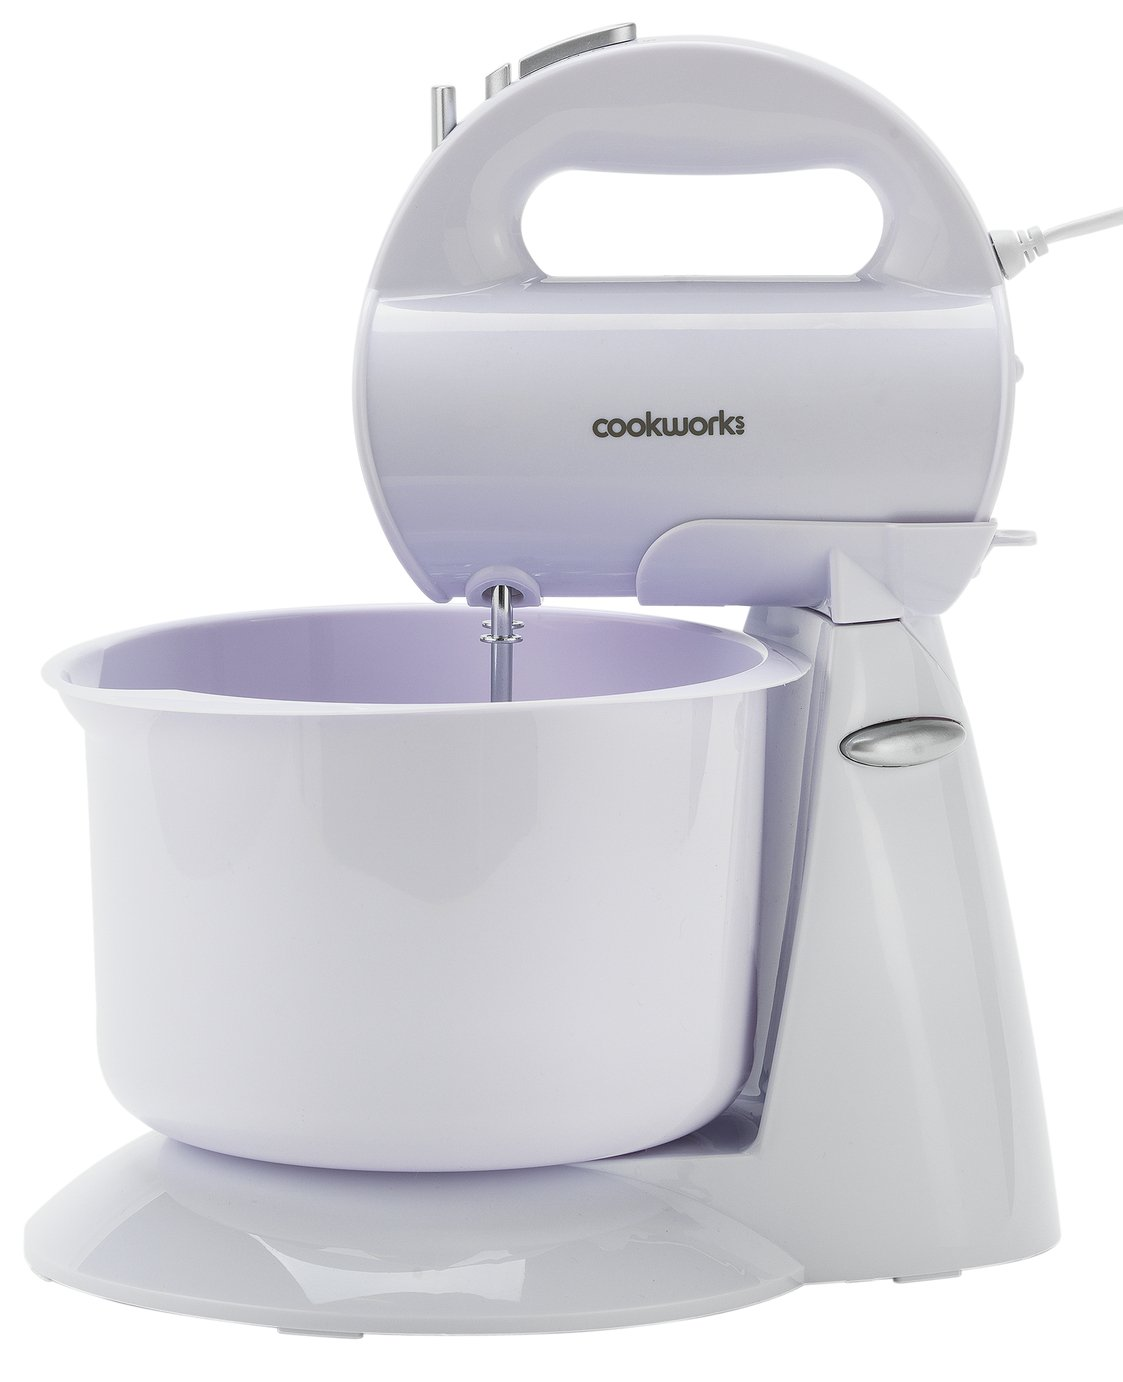 Cookworks Hand and Stand Mixer with Bowl